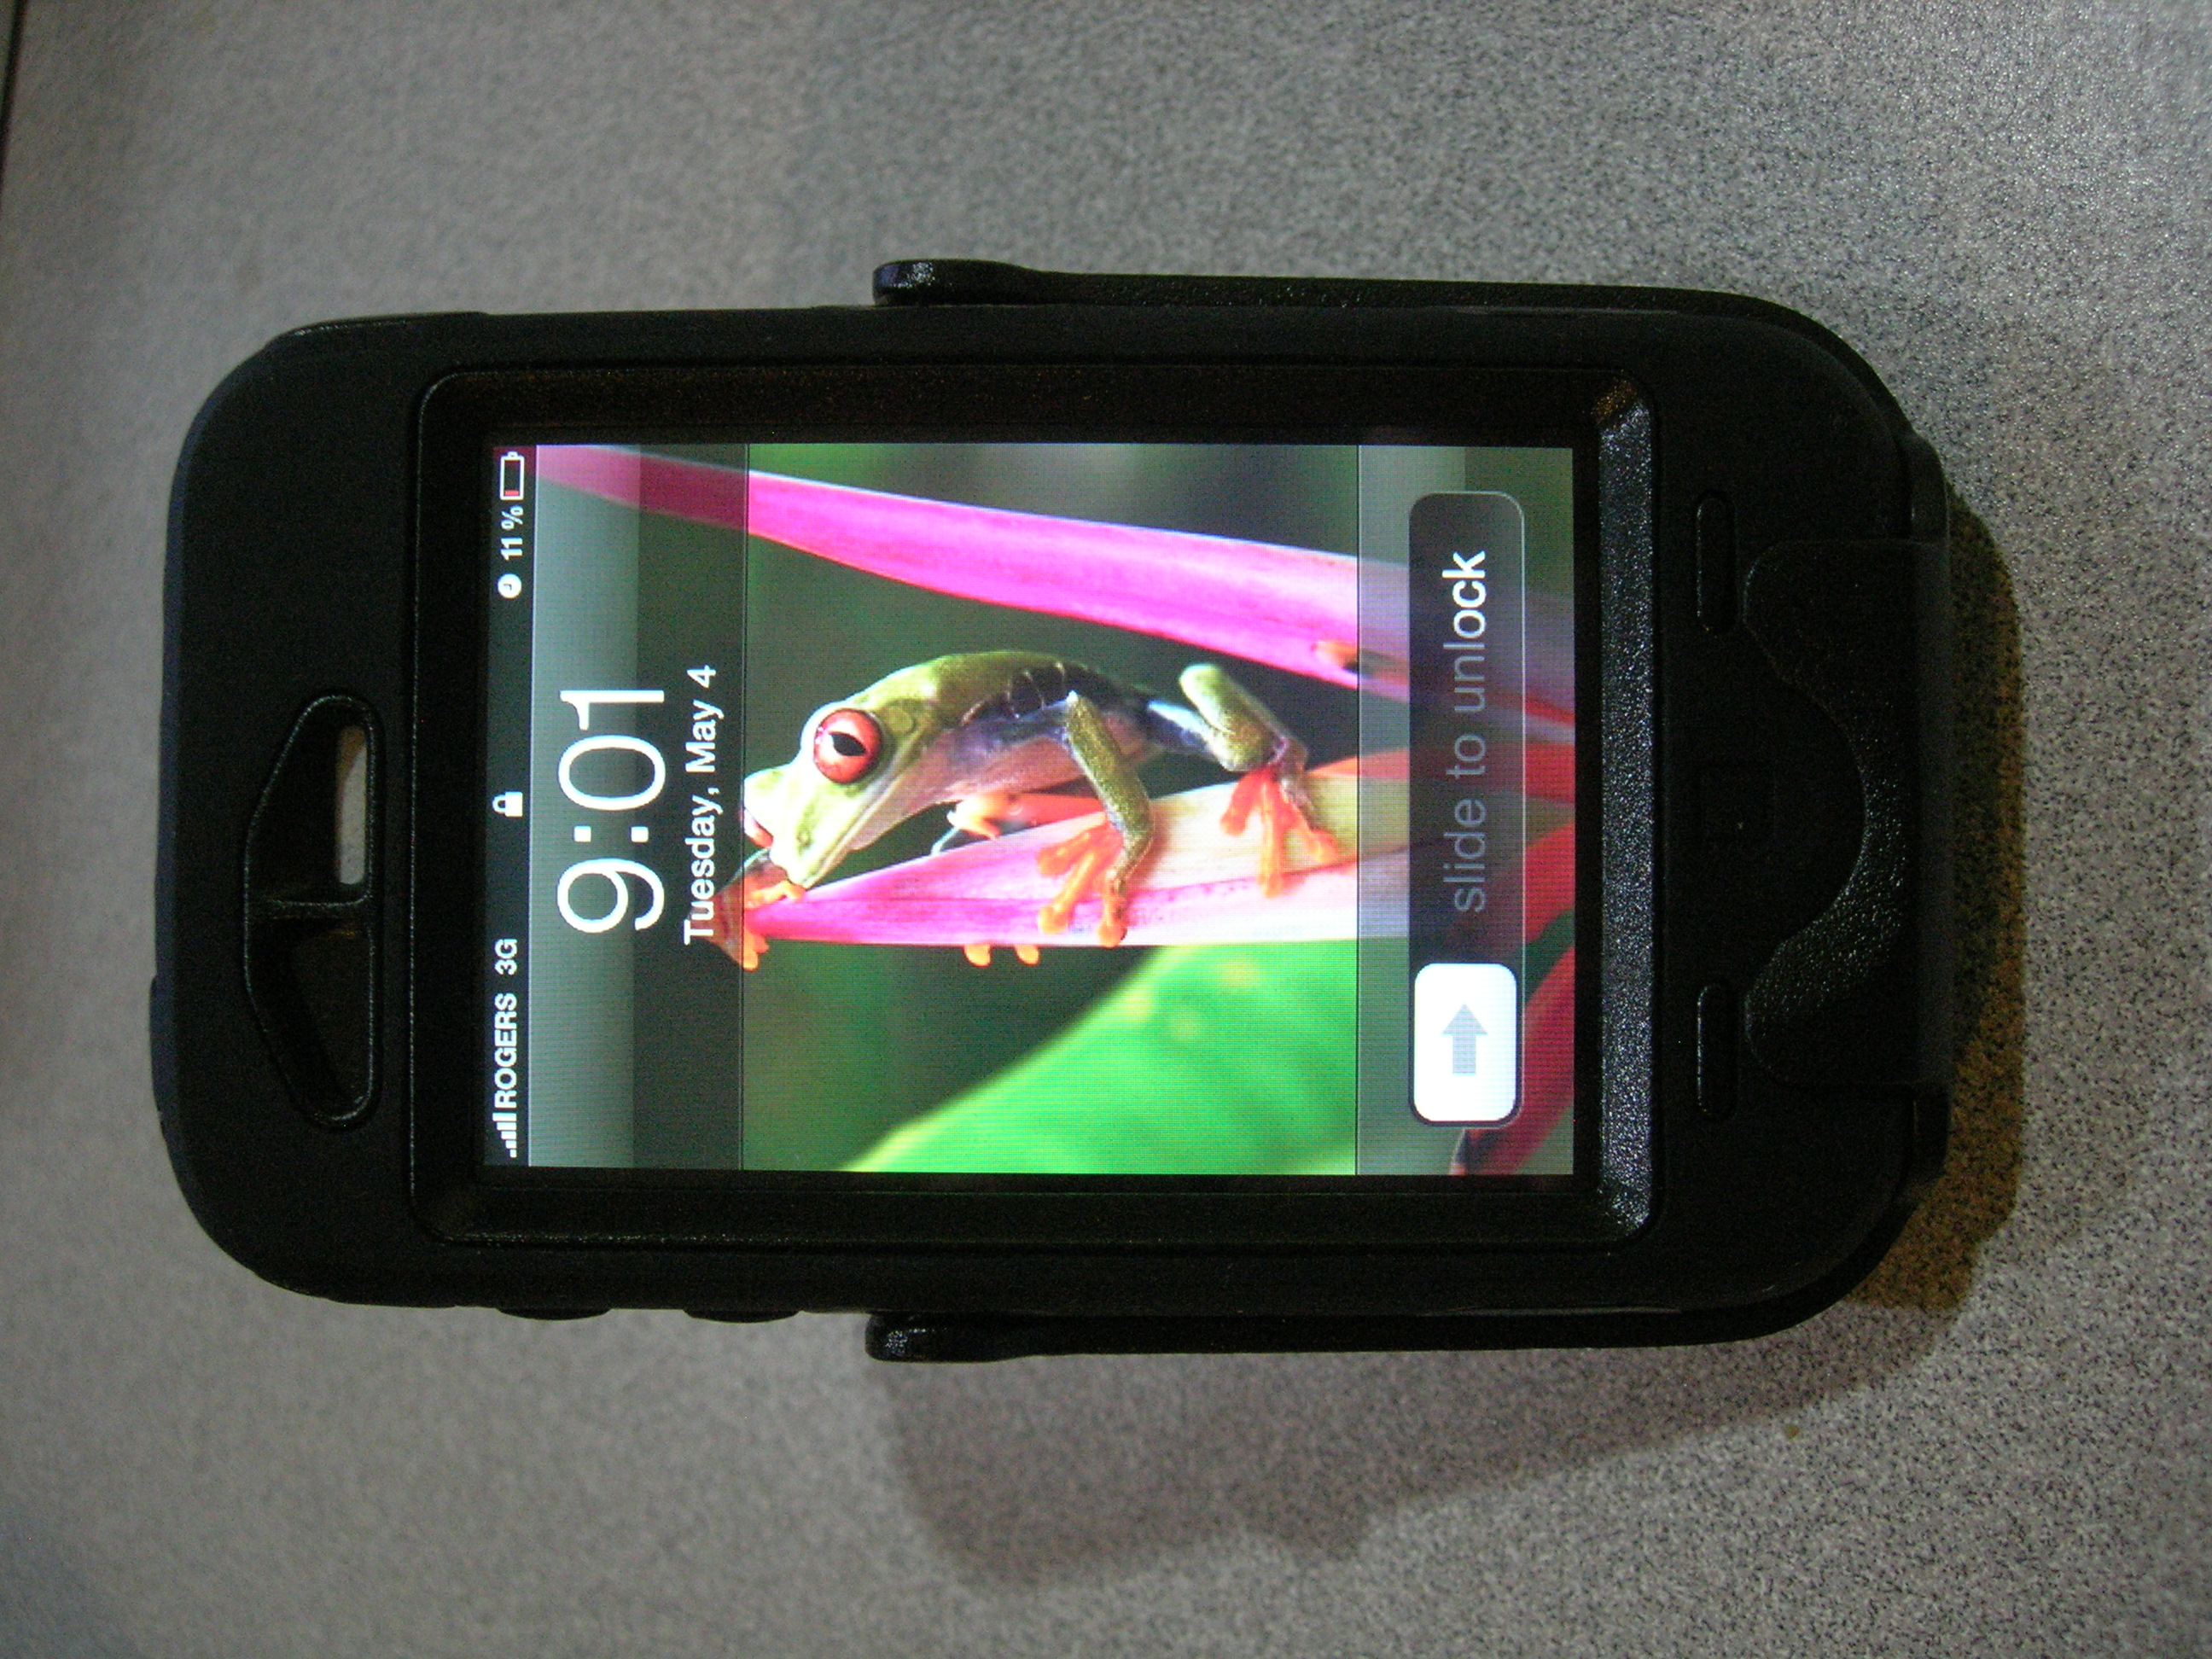 otterbox defender series case for blackberry playbook review